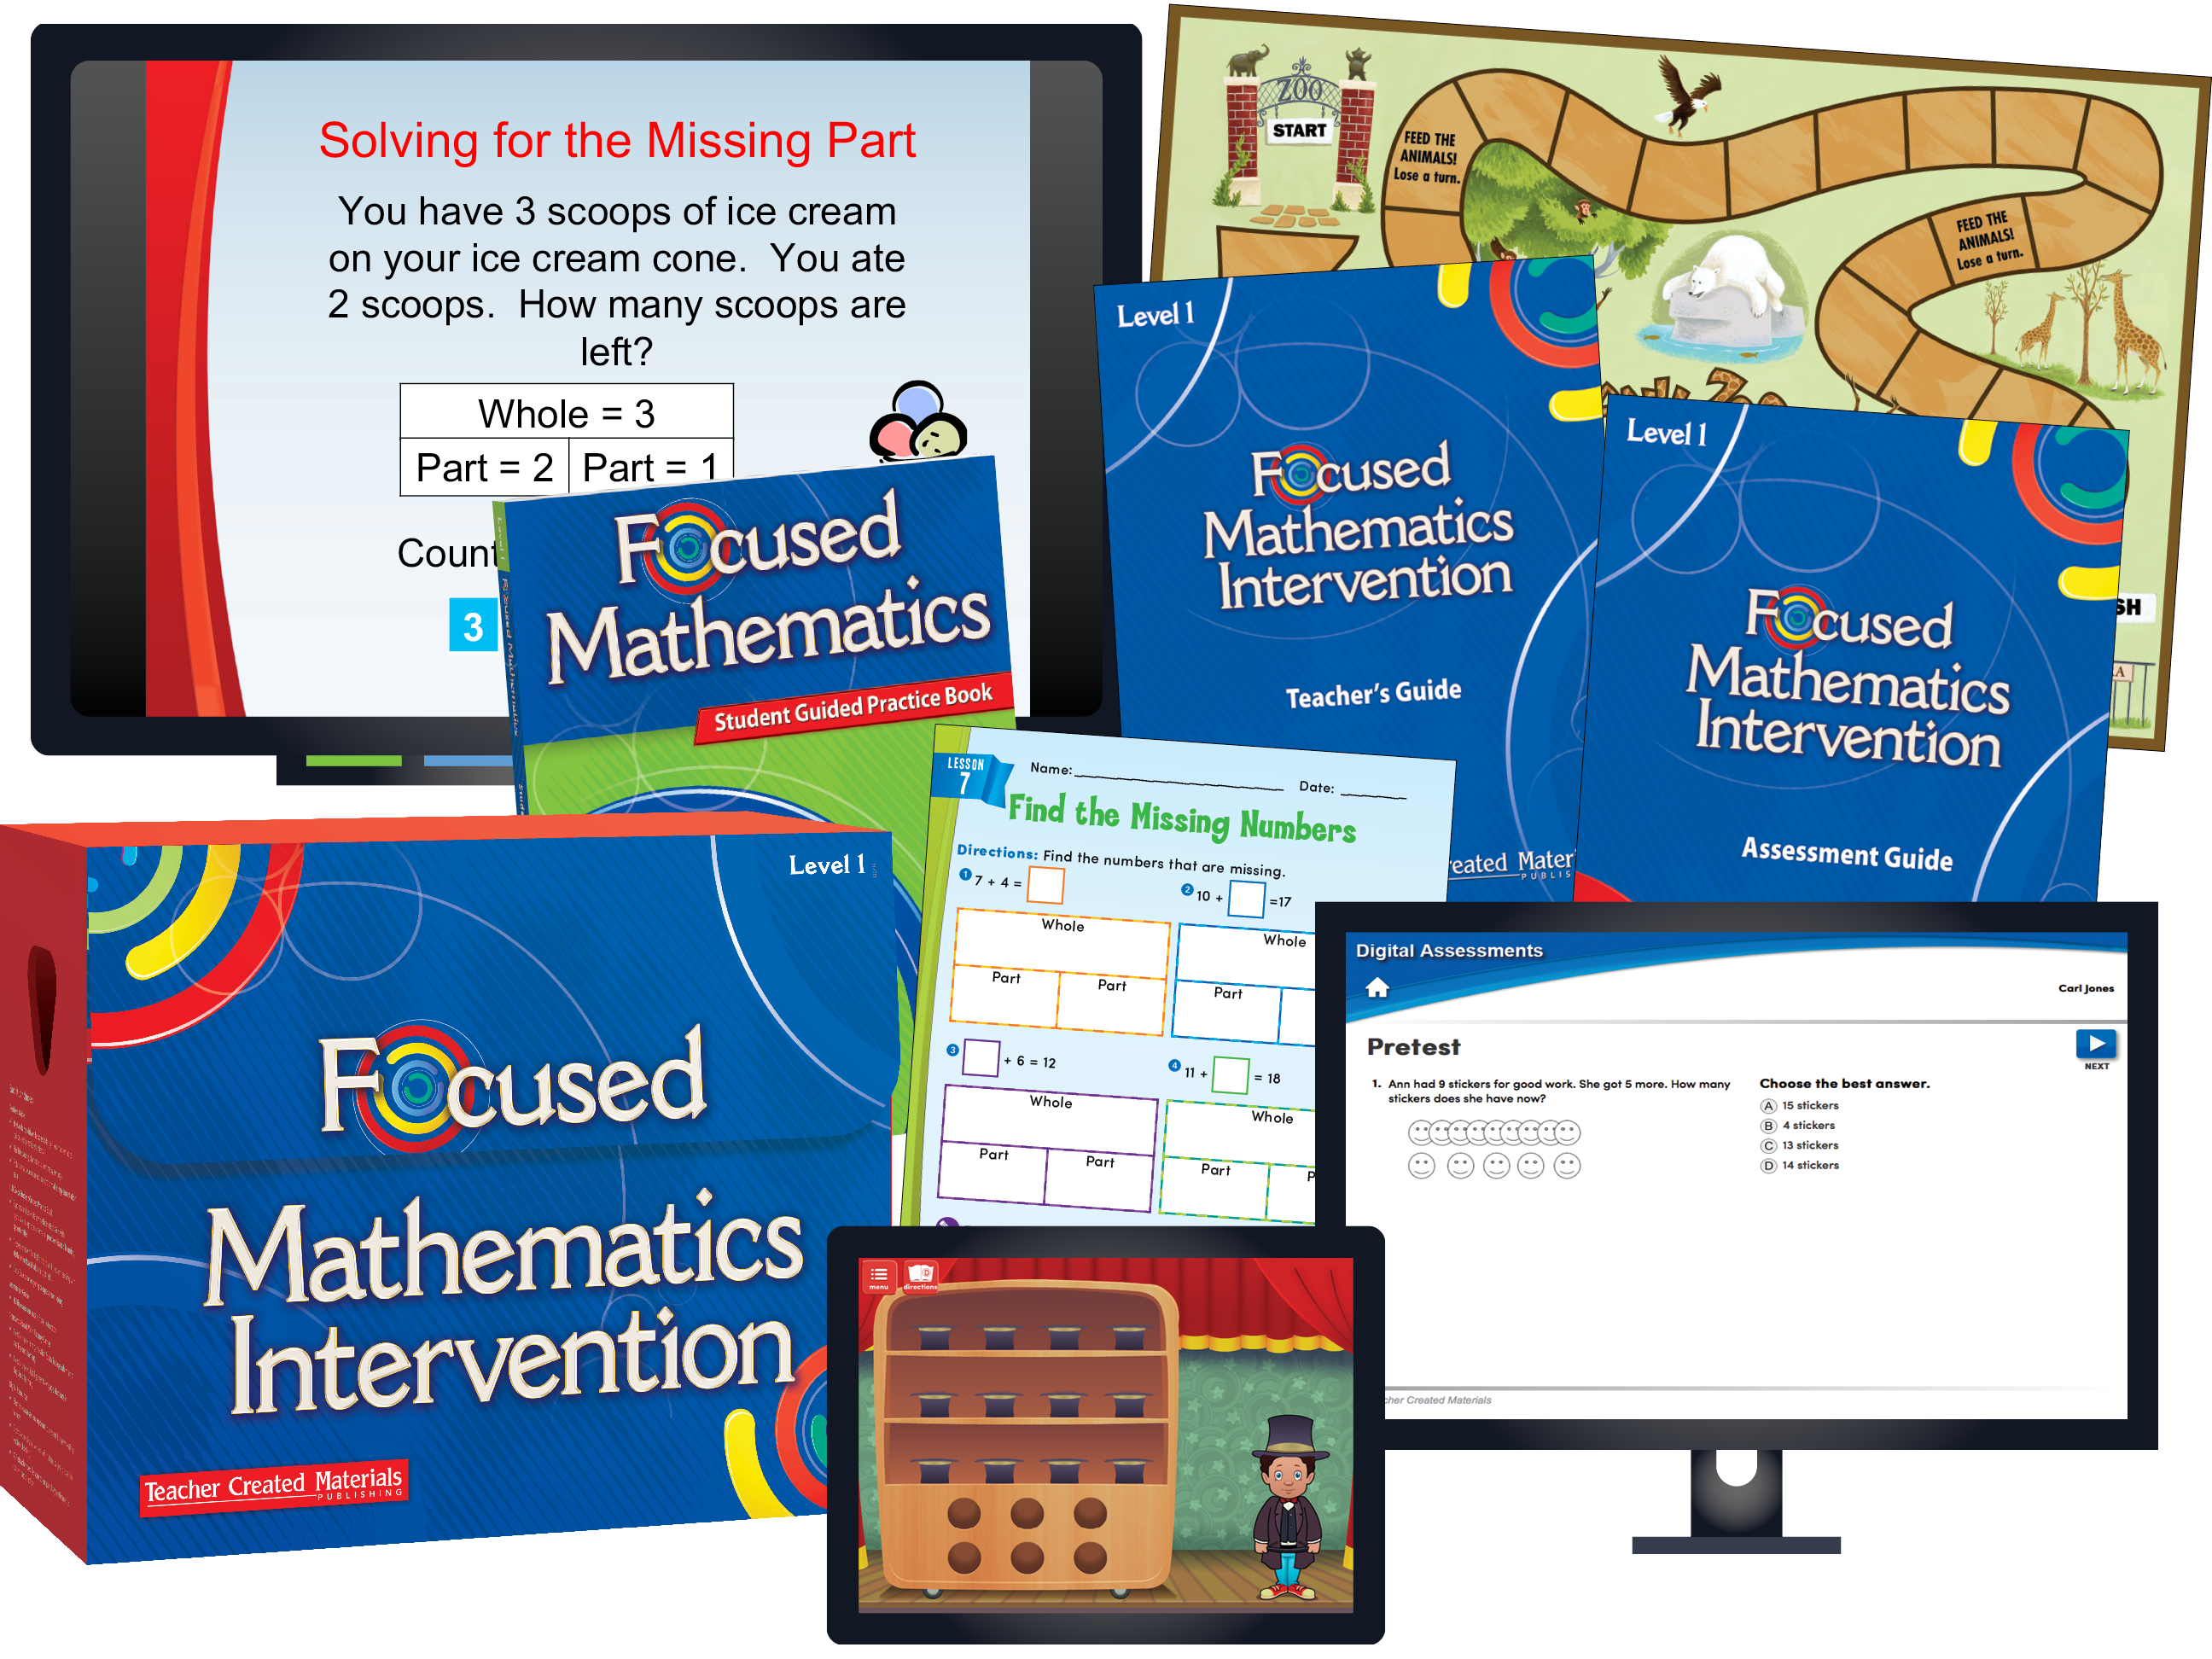 Focused Mathematics Intervention: Level 1 Kit